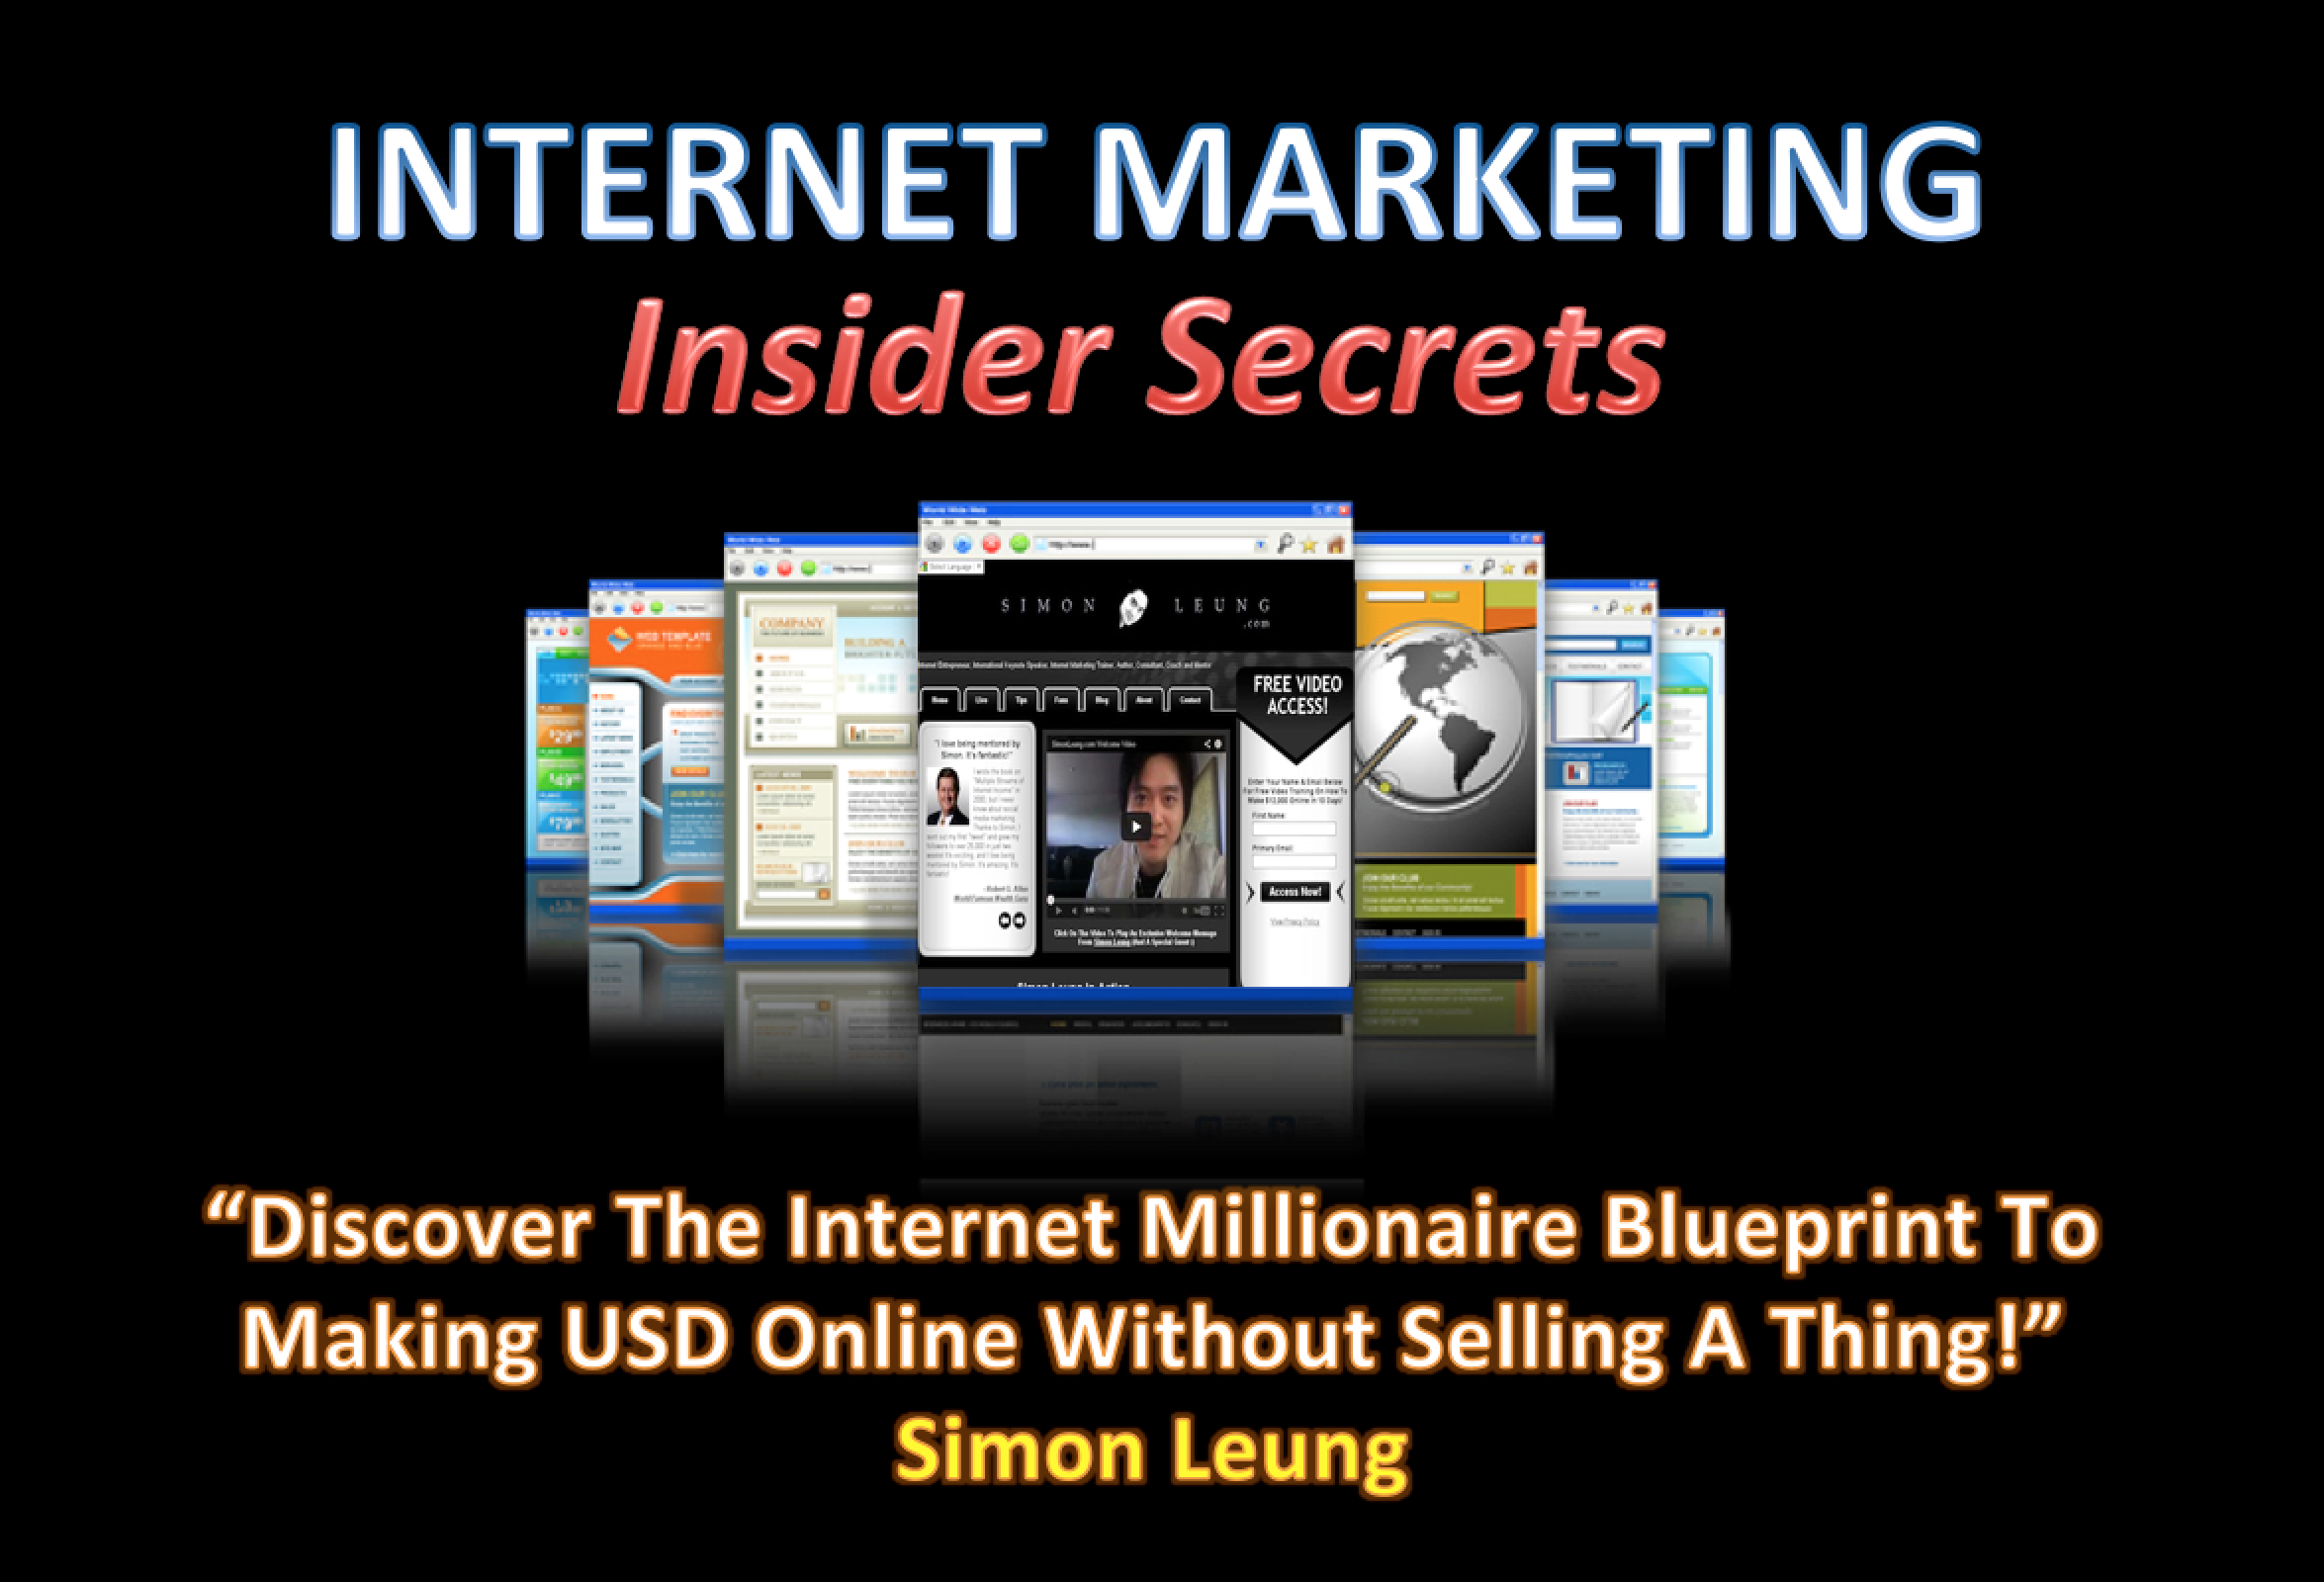 Simon leung internet marketing power blog i havent conducted my own internet marketing training since last year in phnom penh cambodia so all the attendees will receive the newest success methods malvernweather Image collections